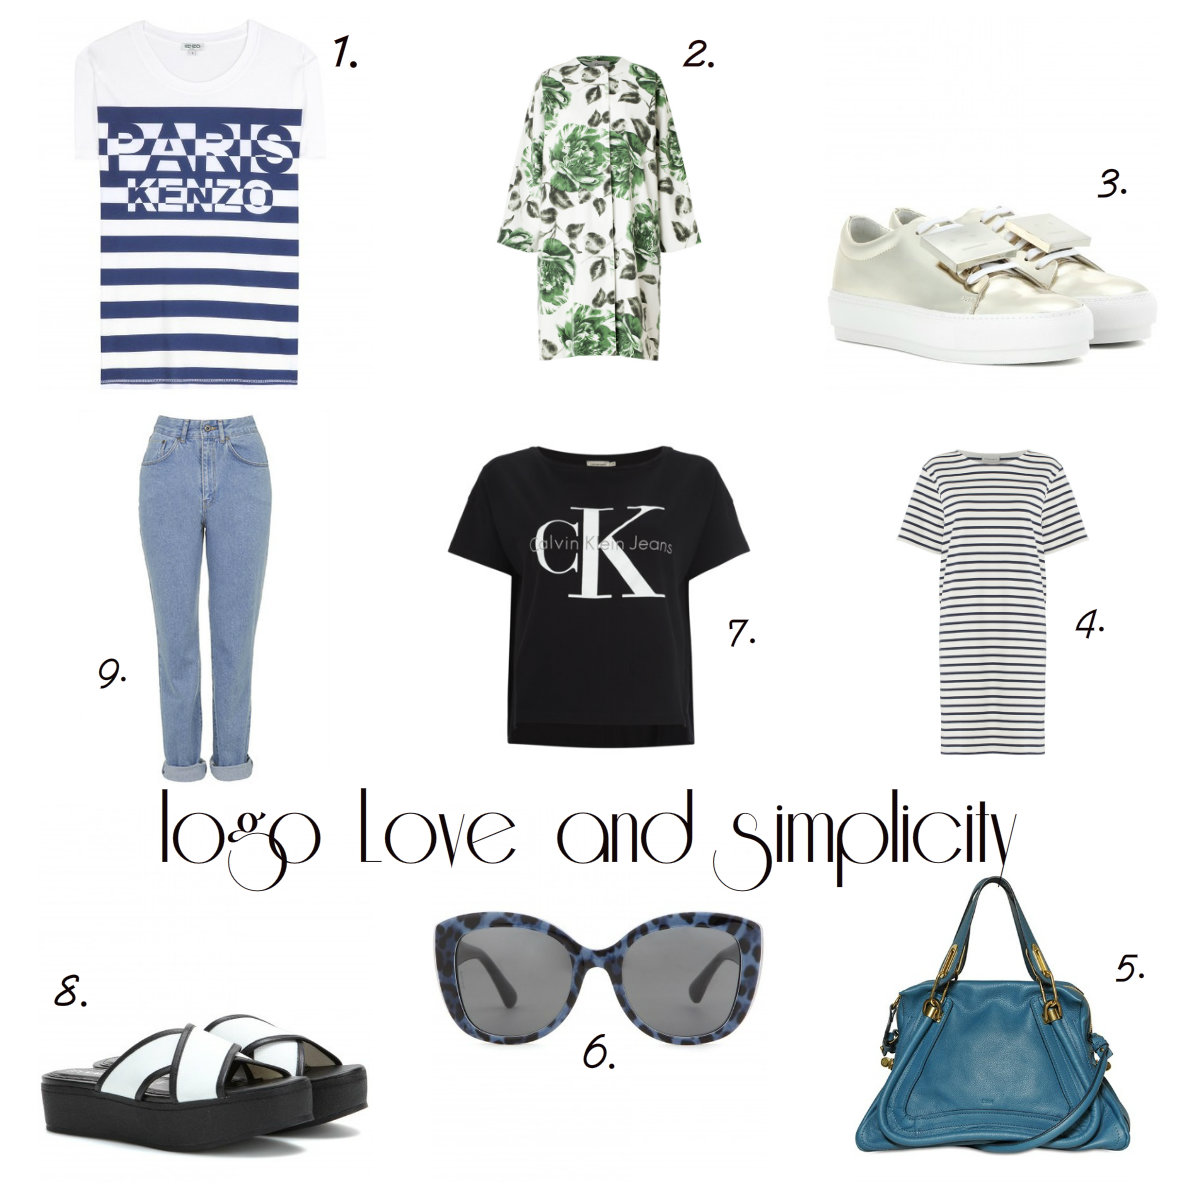 Fashion_Outfit_Wishlist_Week